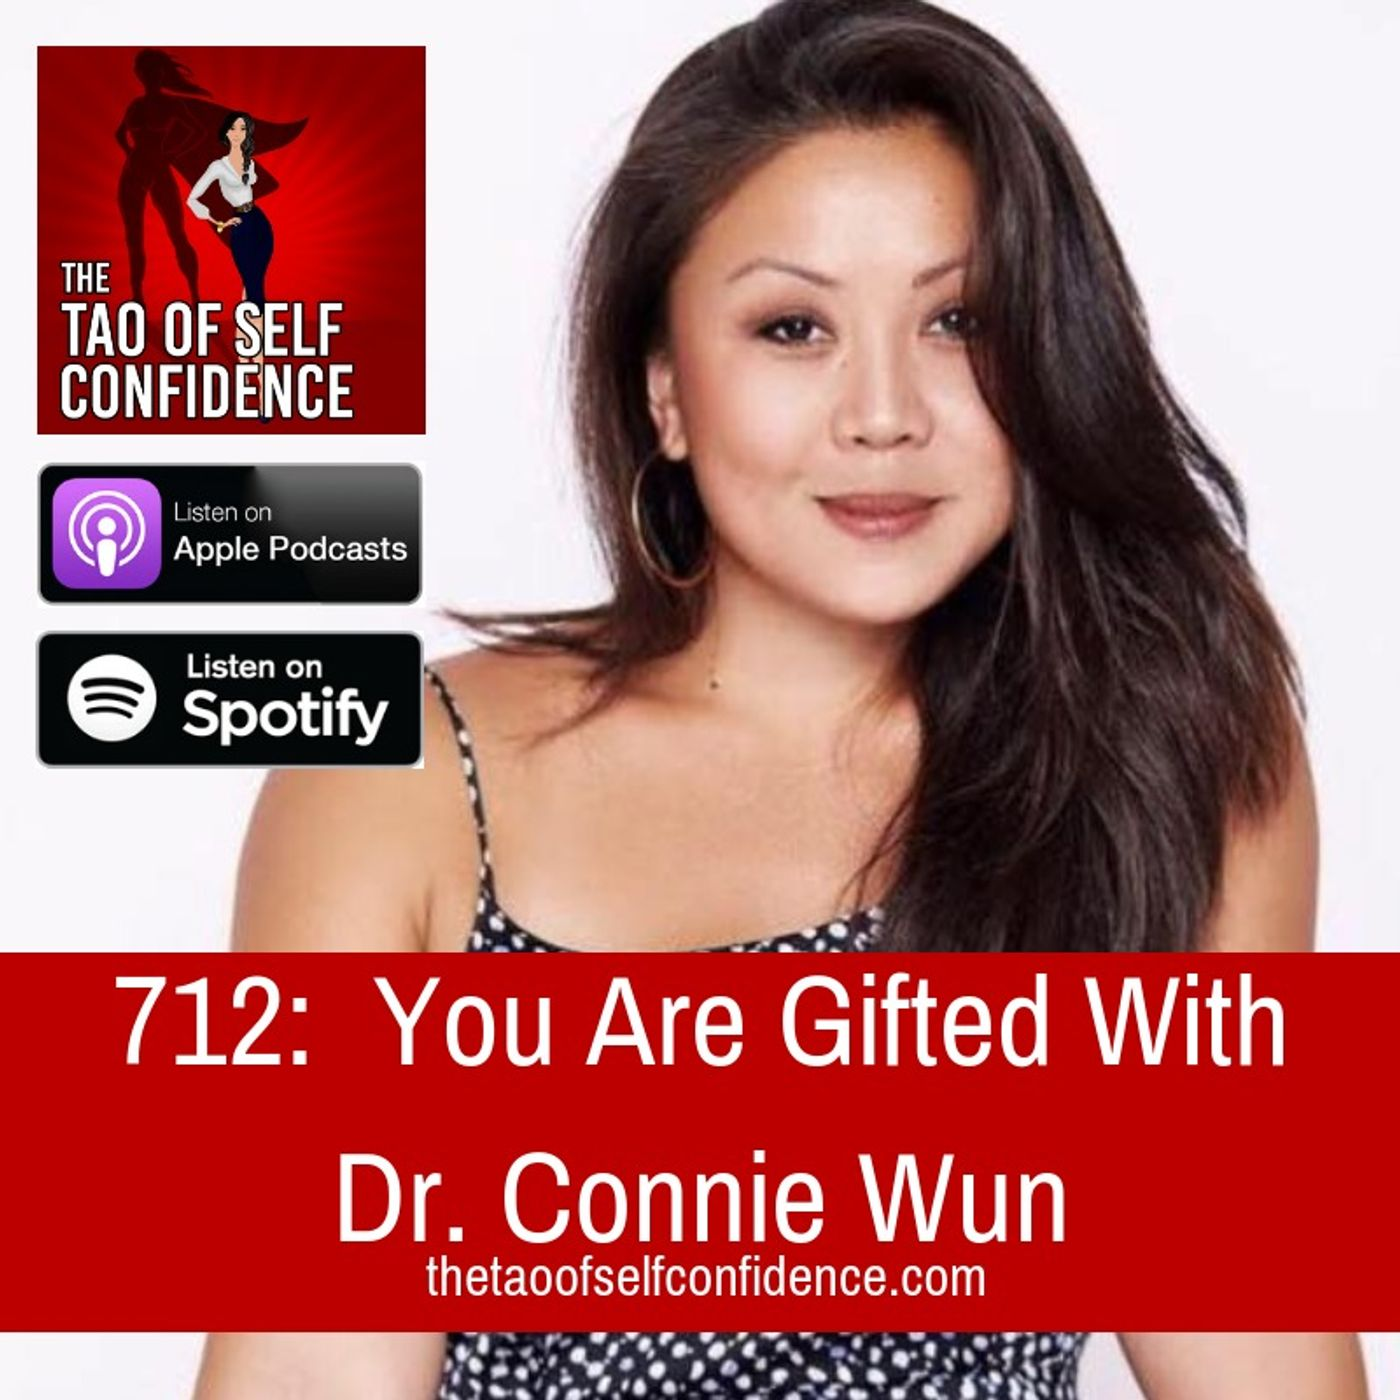 712:  You Are Gifted With Dr. Connie Wun